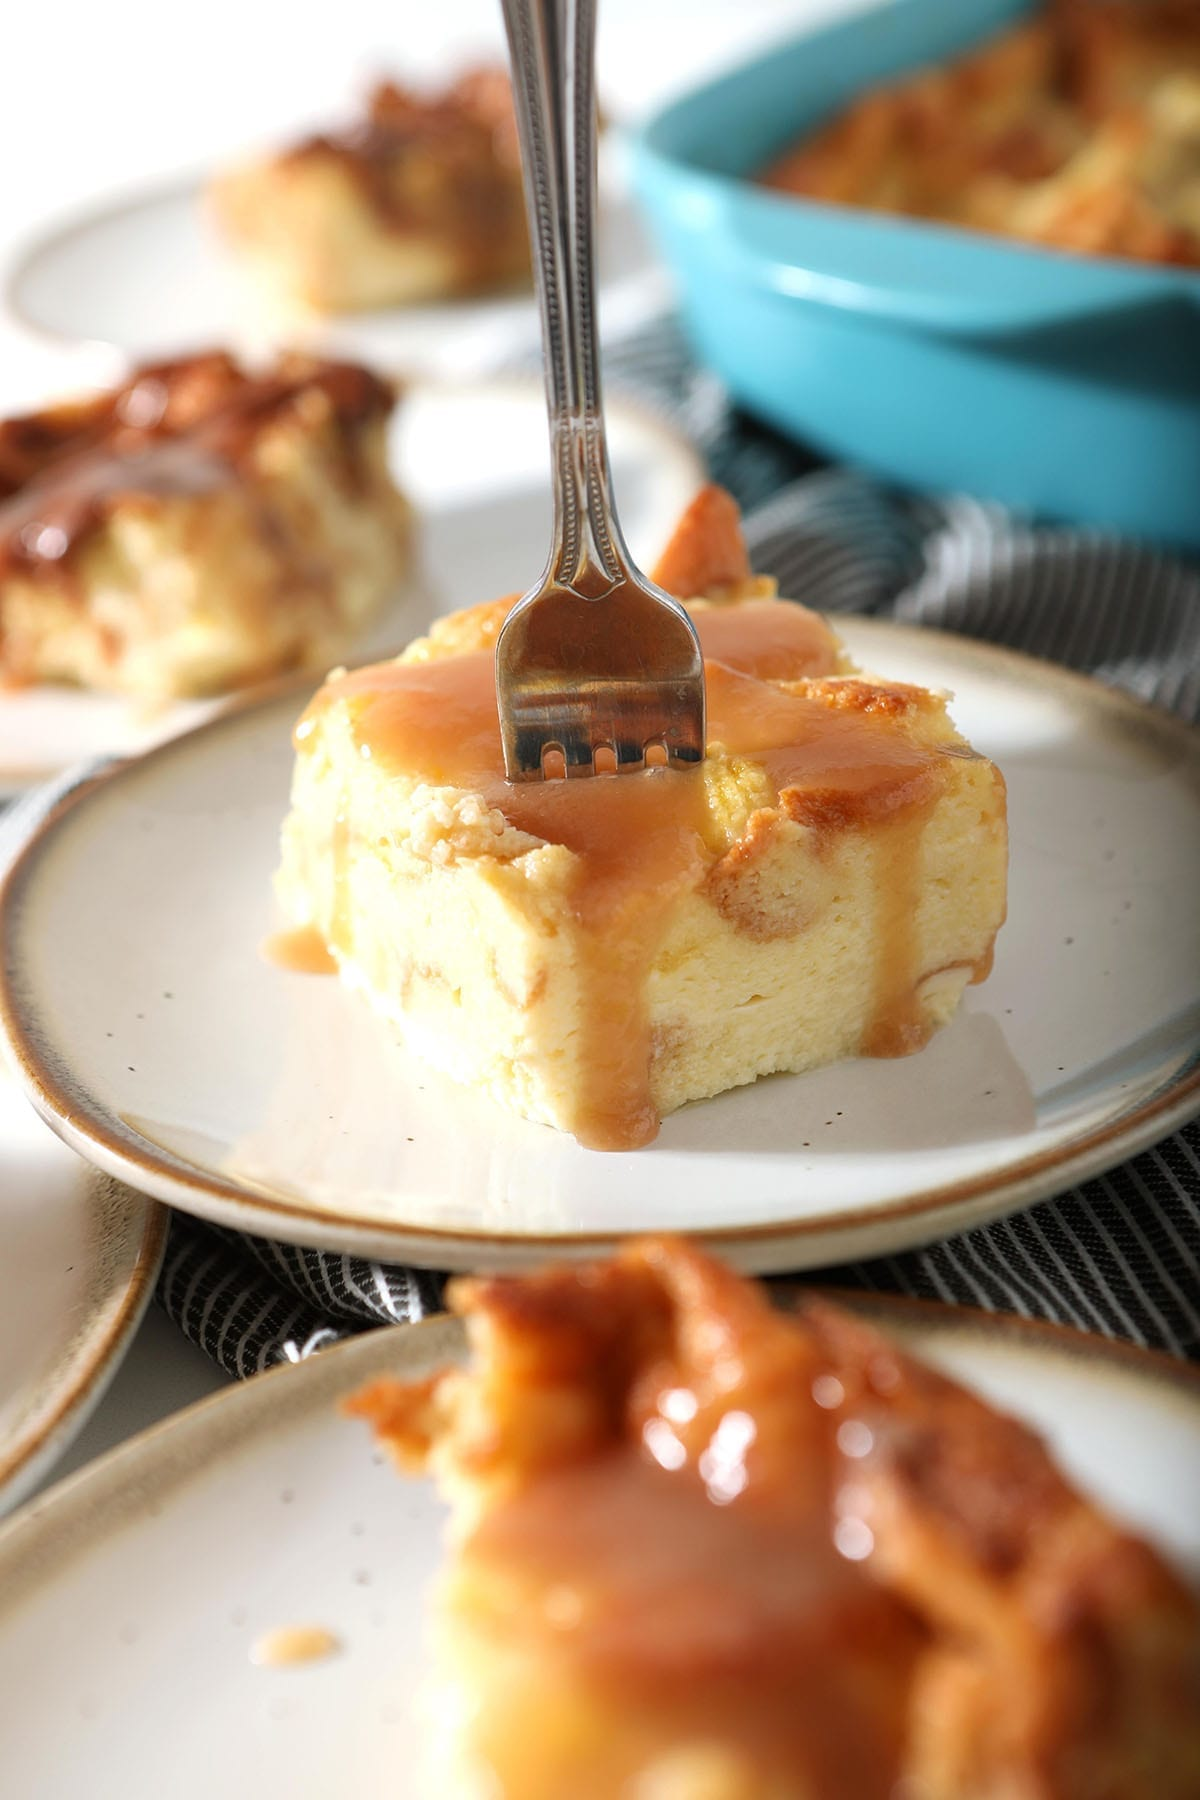 A fork spears a slice of bread pudding with caramel